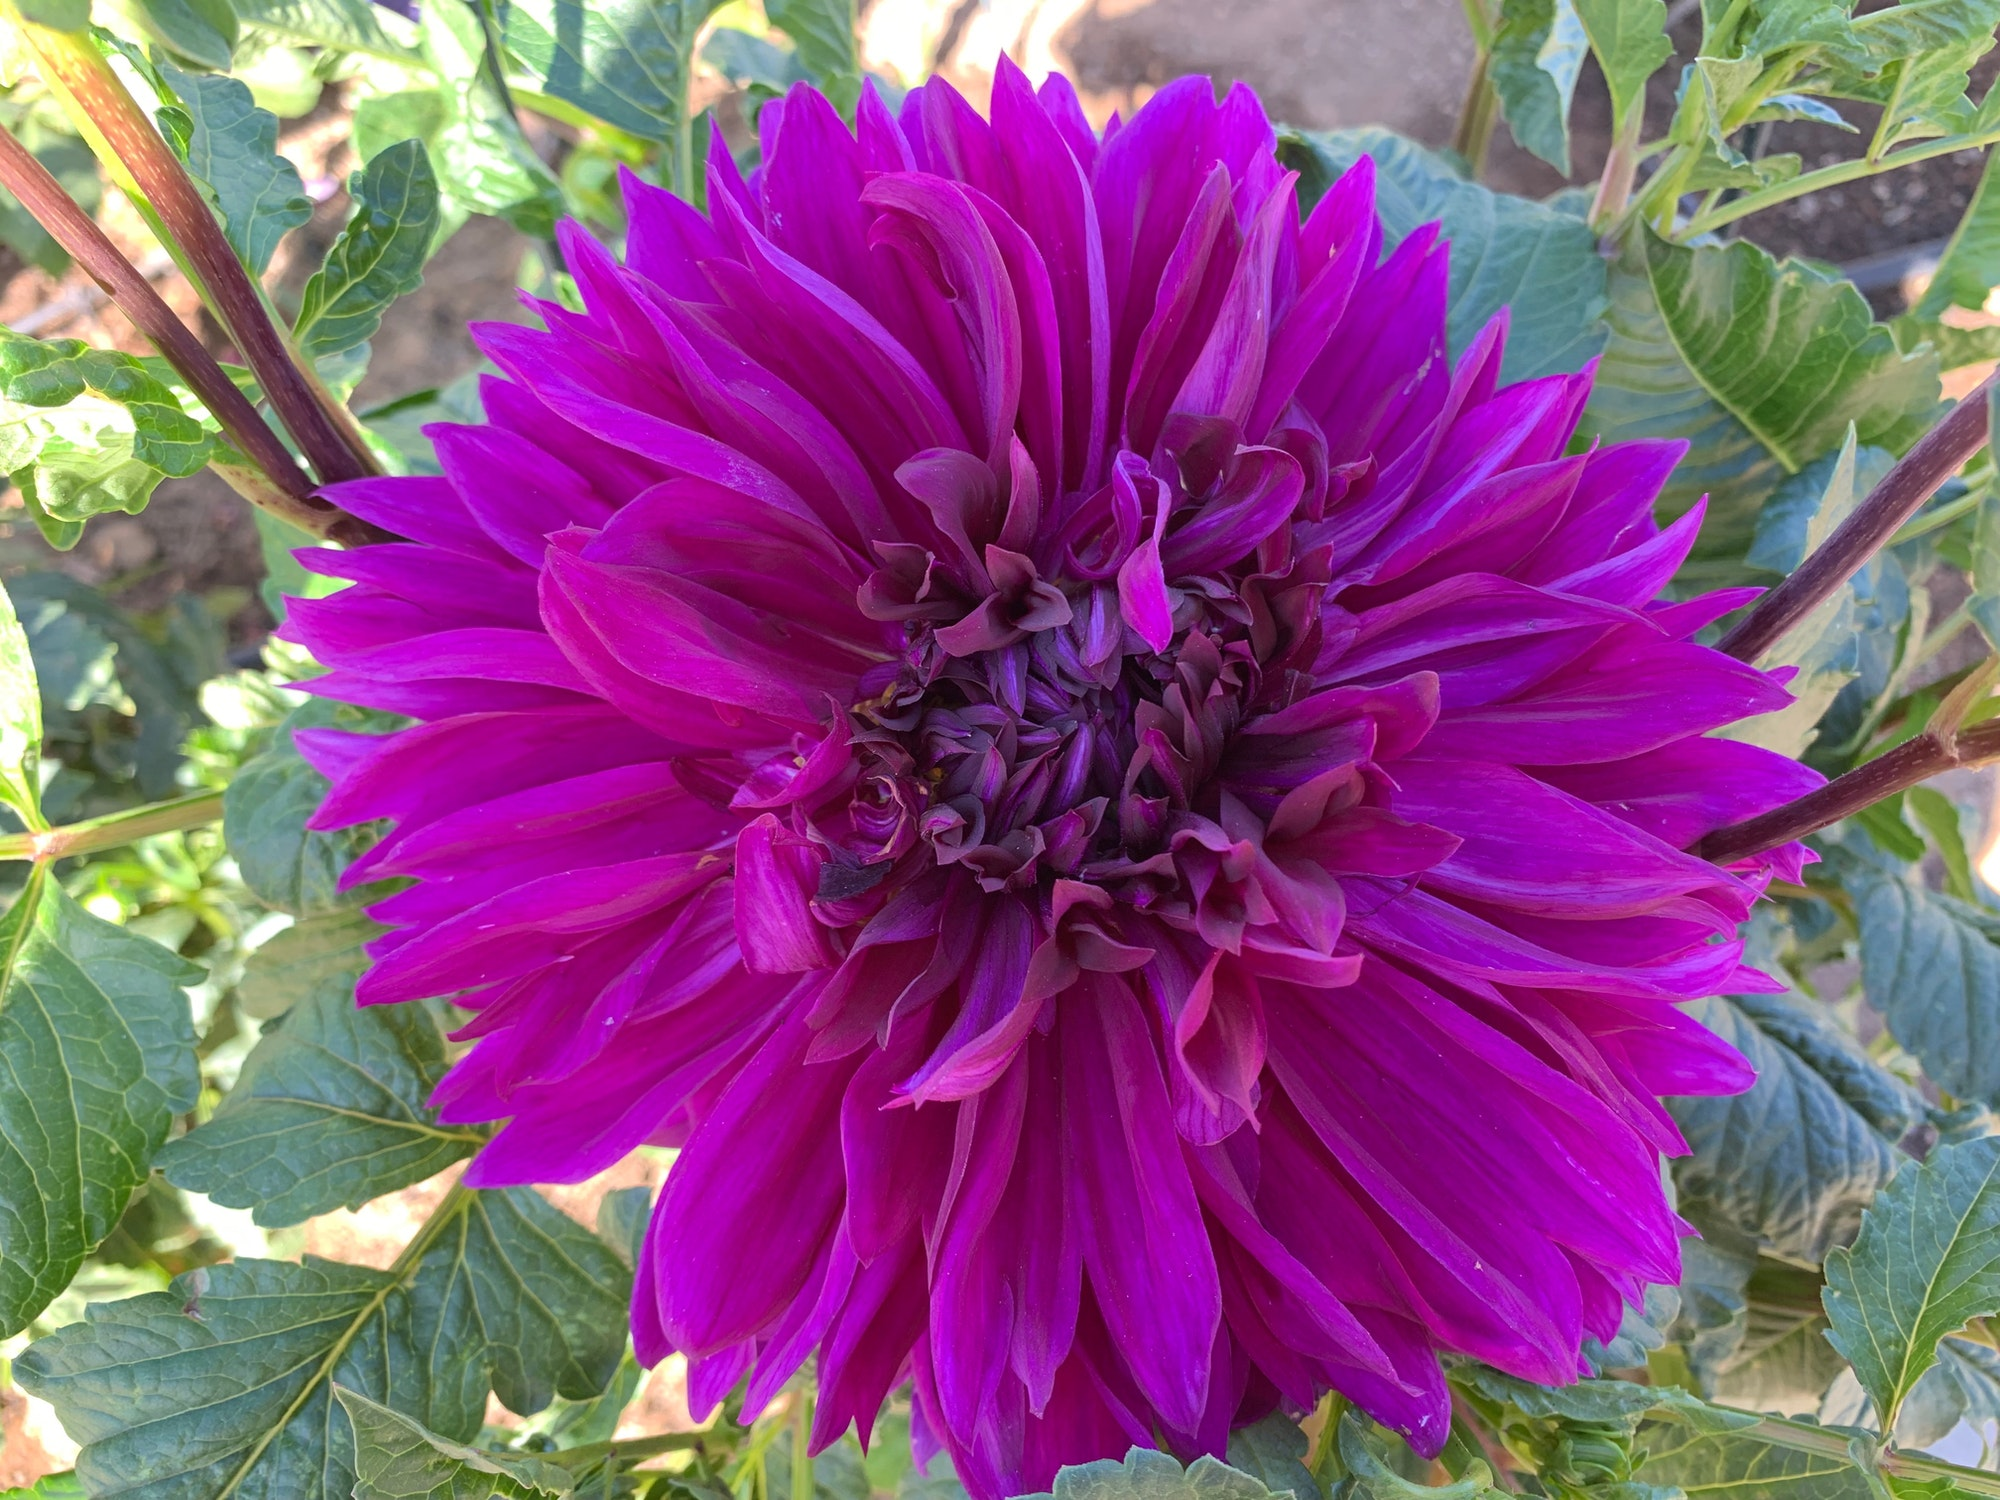 May contain: blossom, dahlia, flower, plant, and purple